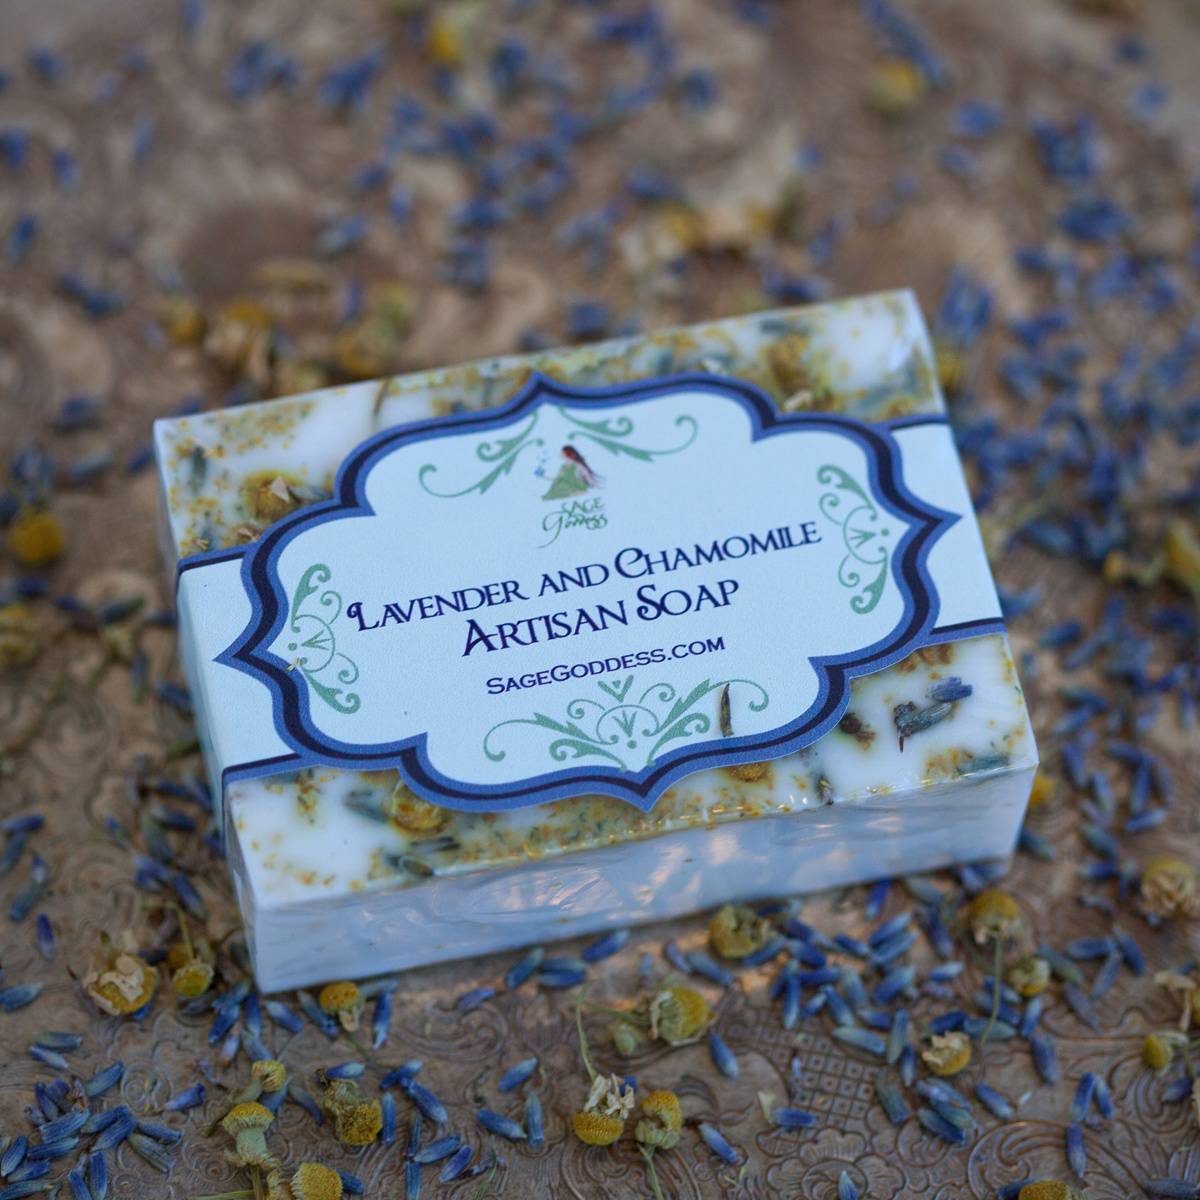 Lavender and Chamomile Artisan Soap 2_28